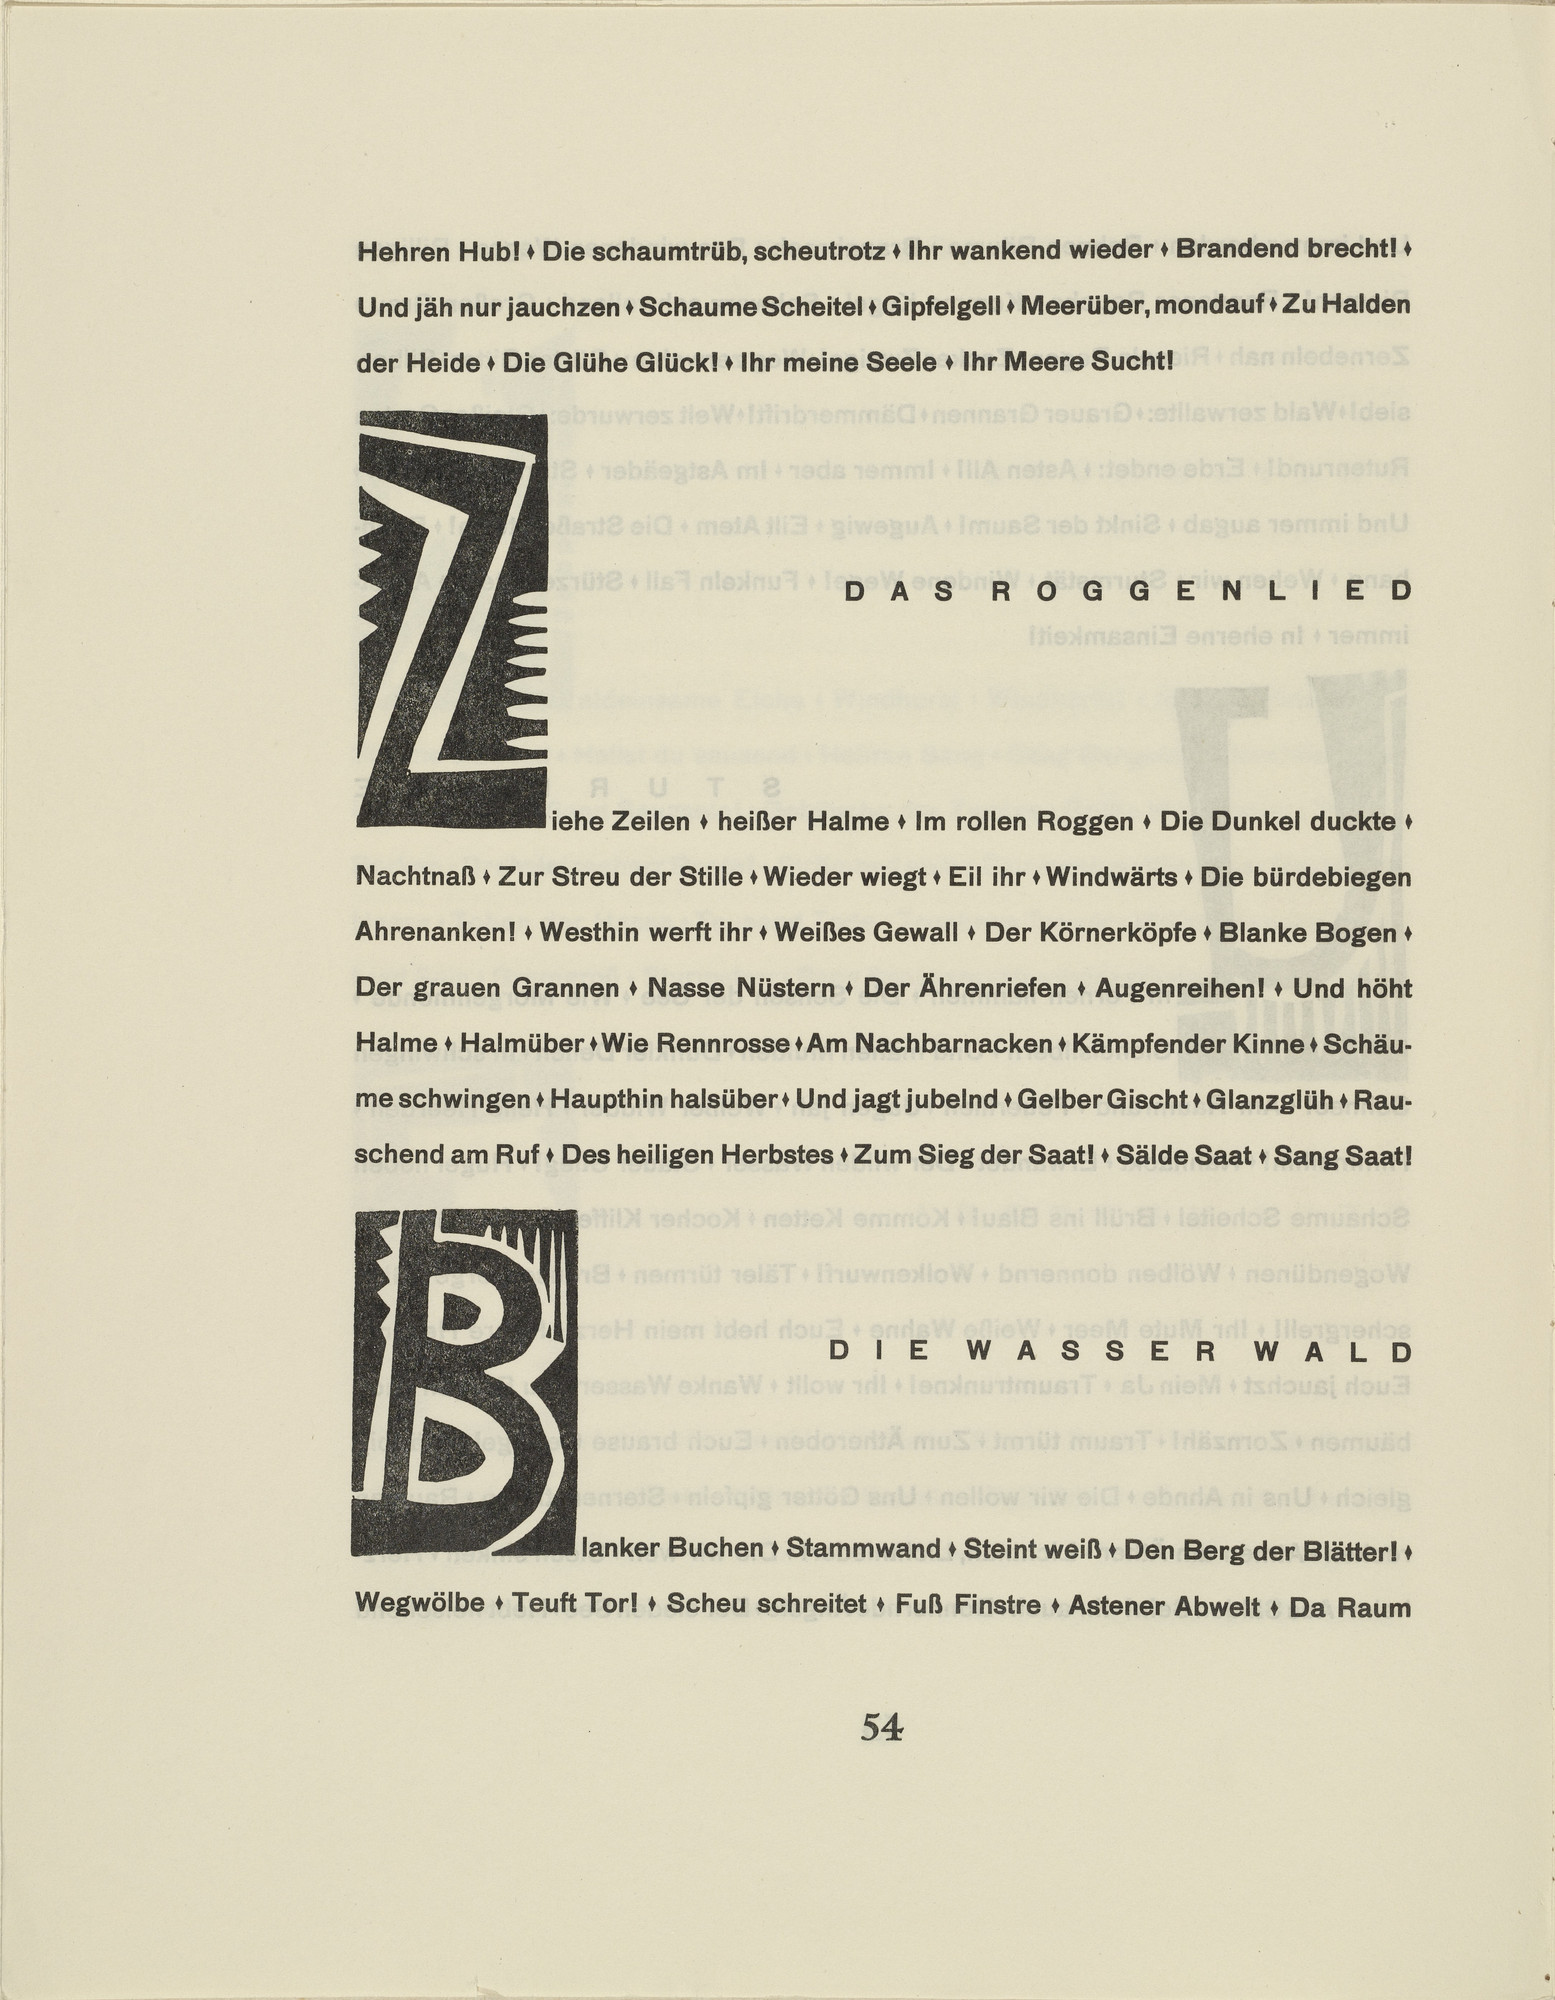 Karl Schmidt-Rottluff. Ornamental initial 'B' from the periodical Kündung, vol. 1, no. 4, 5, 6 (April, May, June 1921). 1921 (executed 1920)